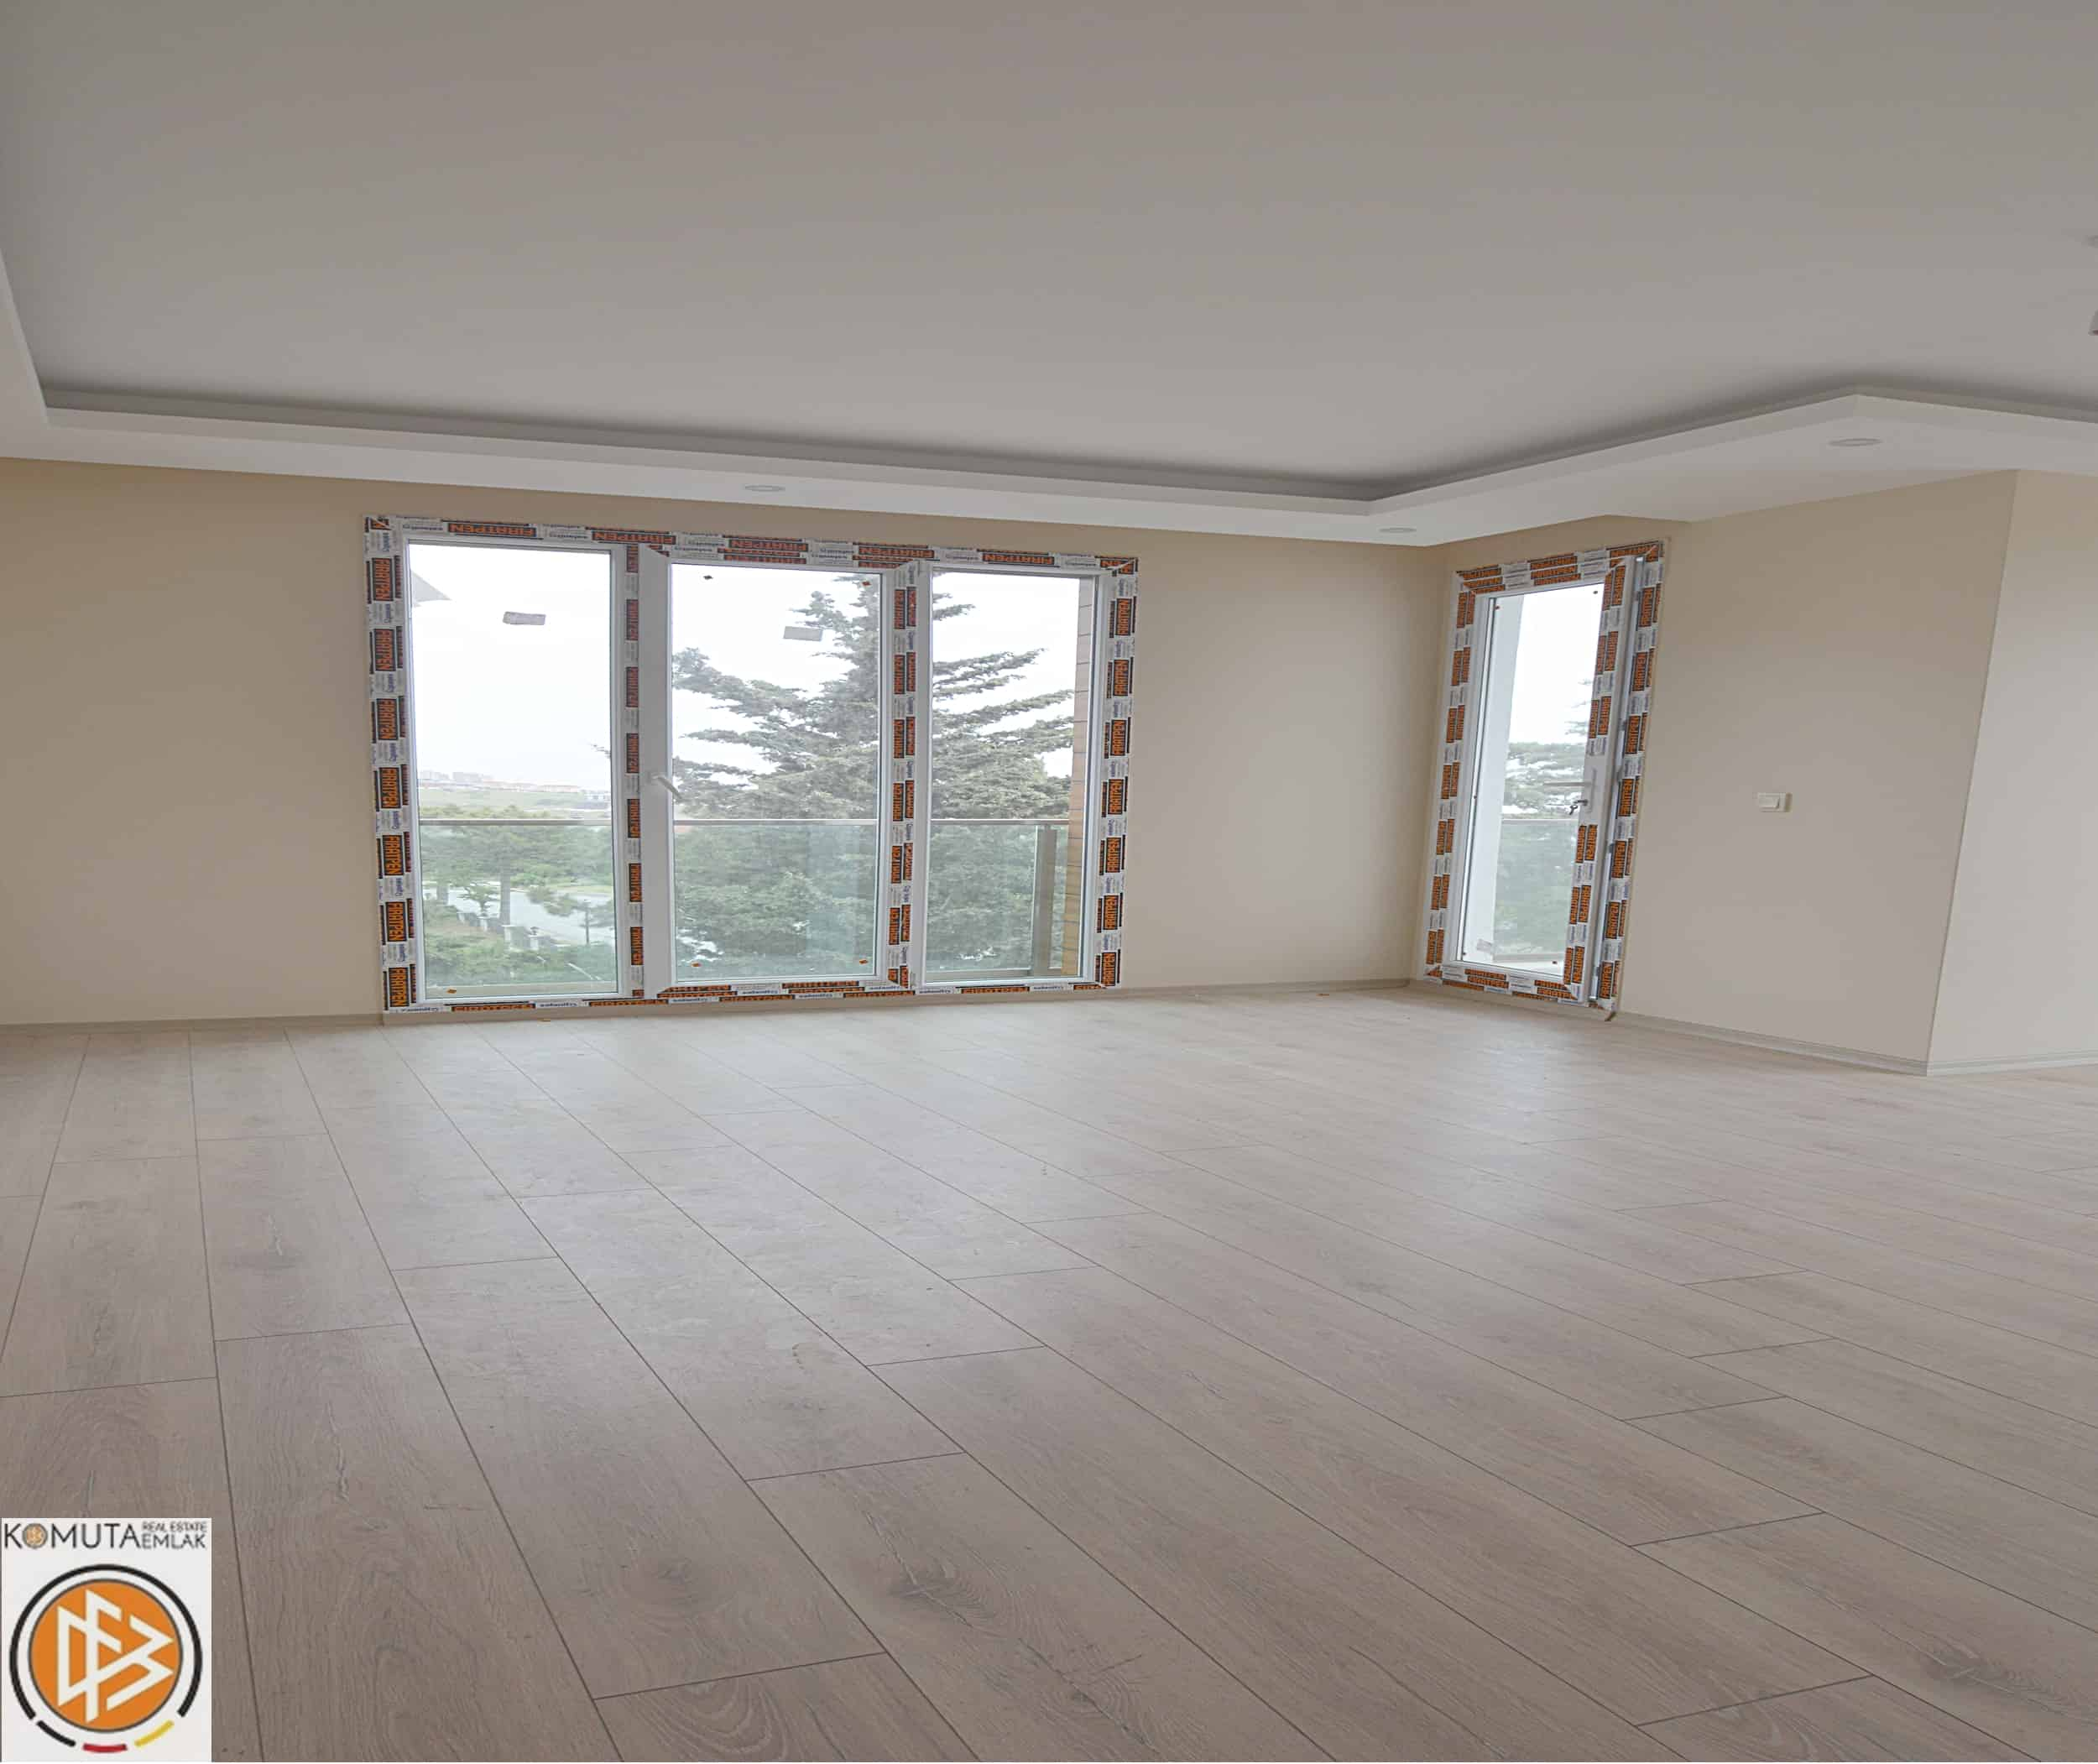 Duplex Apartments For Rent: Sea View 3+2 Duplex Apartment For Sale InBeylikduzu Istanbul (Turkey, Istanbul, Beylikduzu